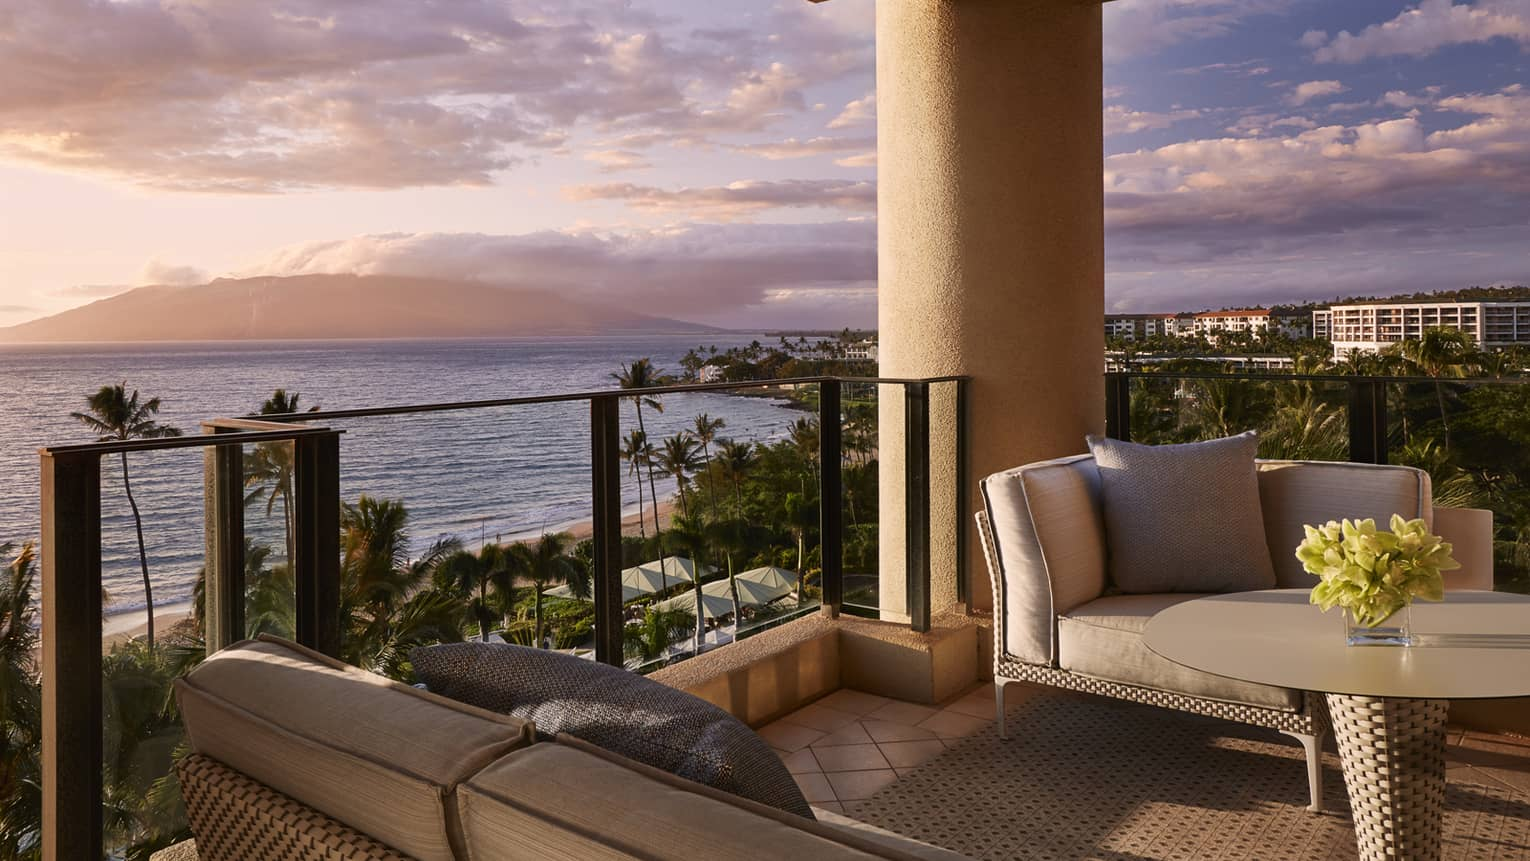 Outdoor terrace with sofa, arm chair, glass railing, looking out to sunset over ocean